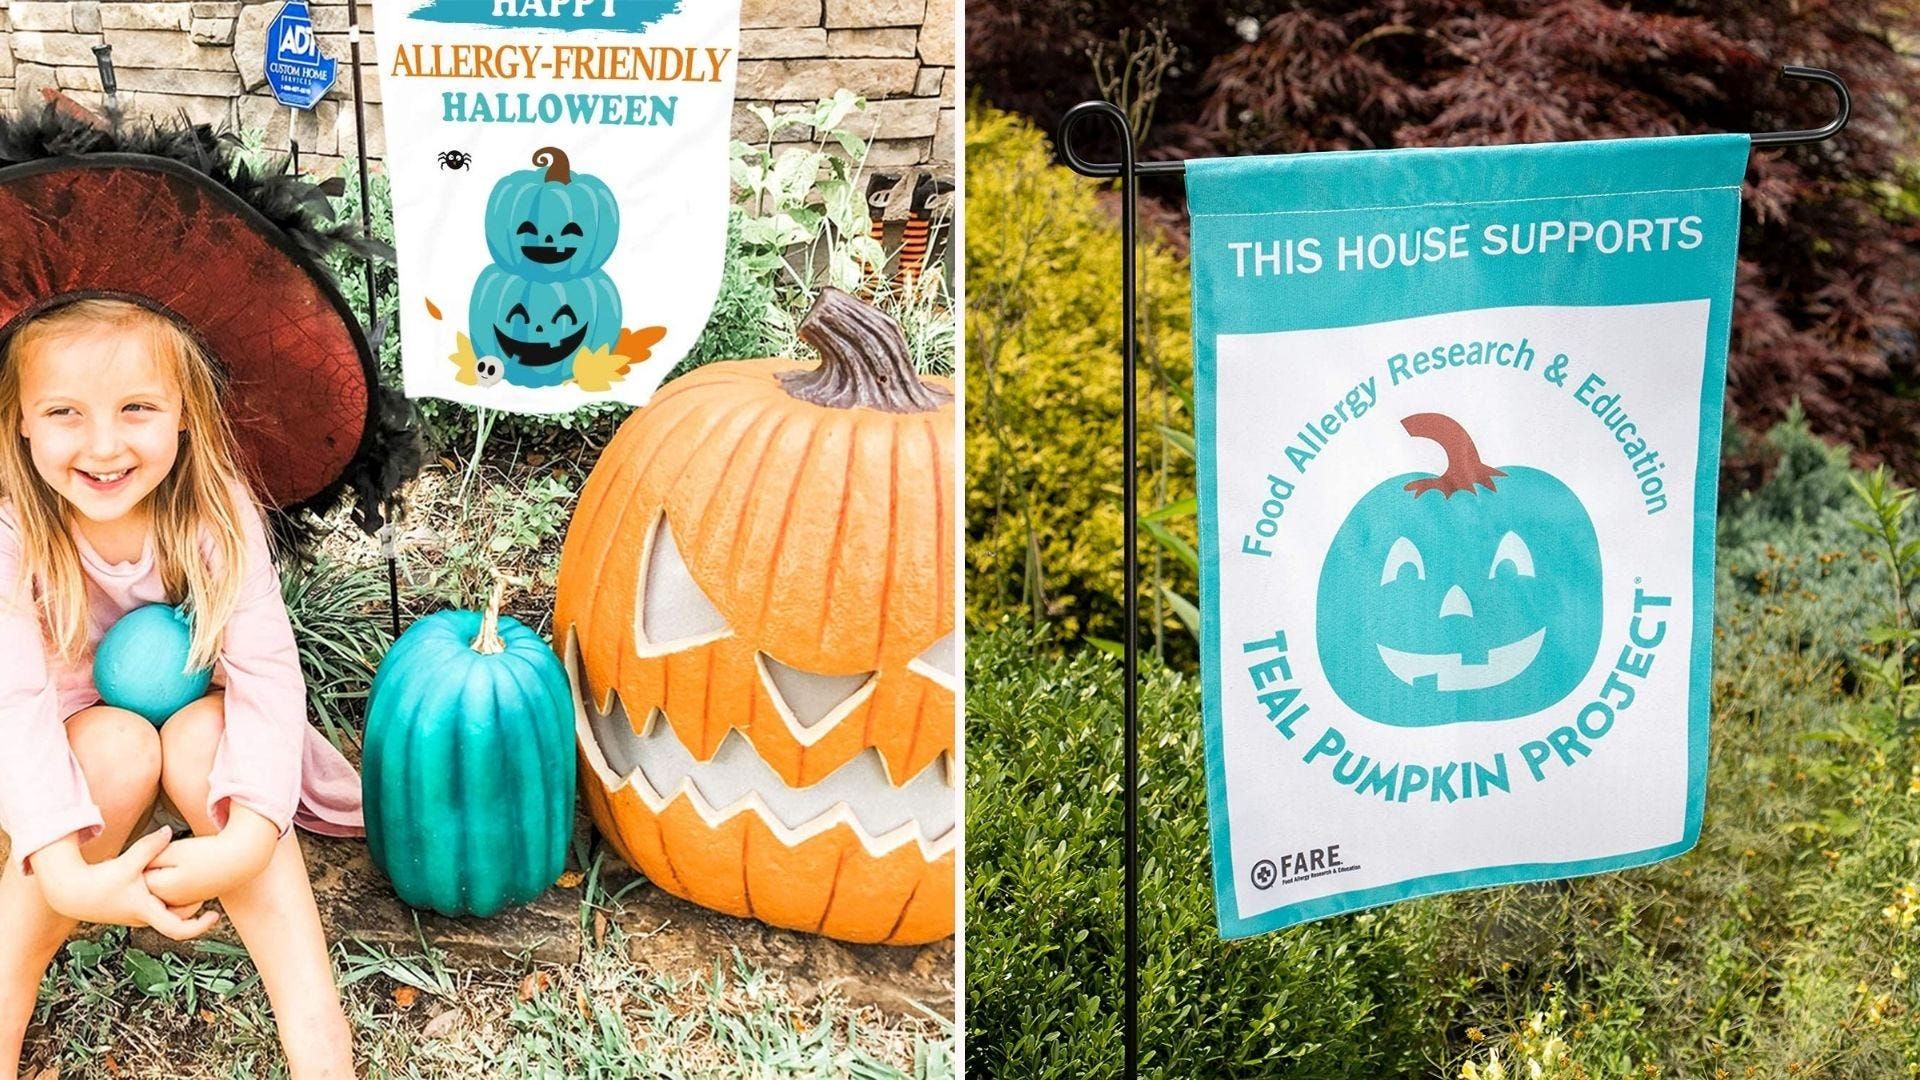 Halloween decorations and signs indicating a home has allergy-friendly treats.